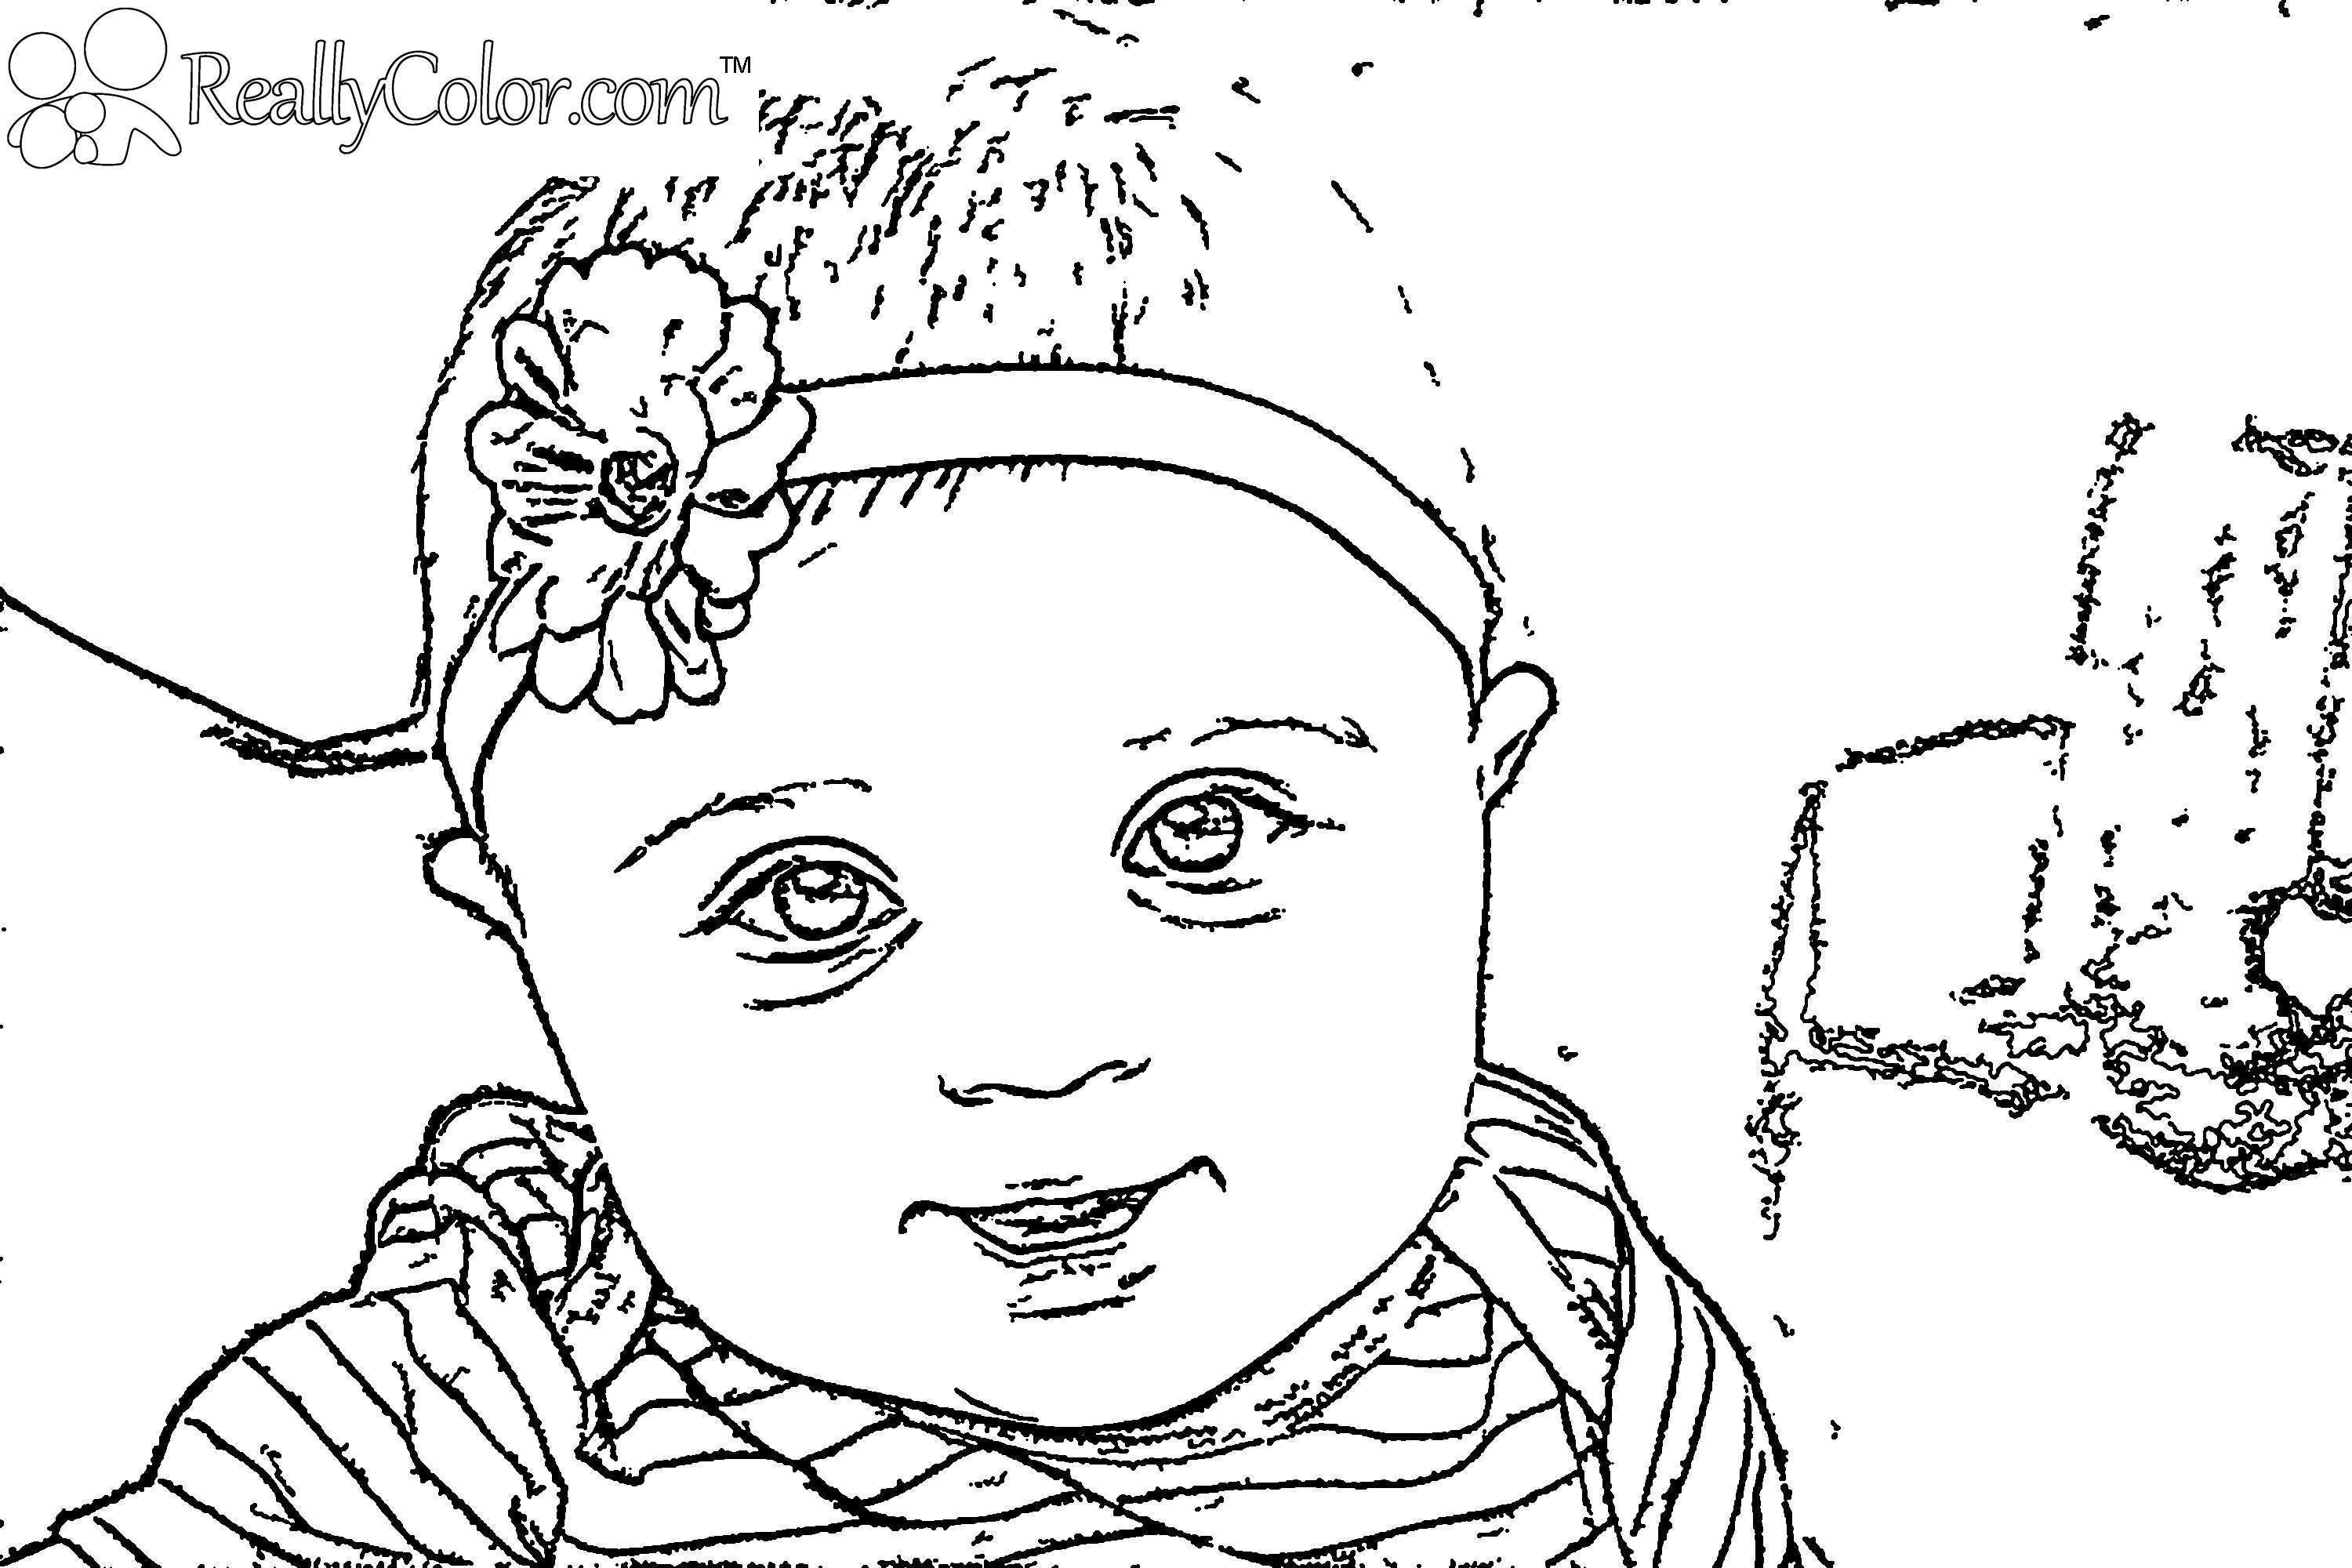 coloring picture people real people coloring pages at getdrawings free download picture coloring people